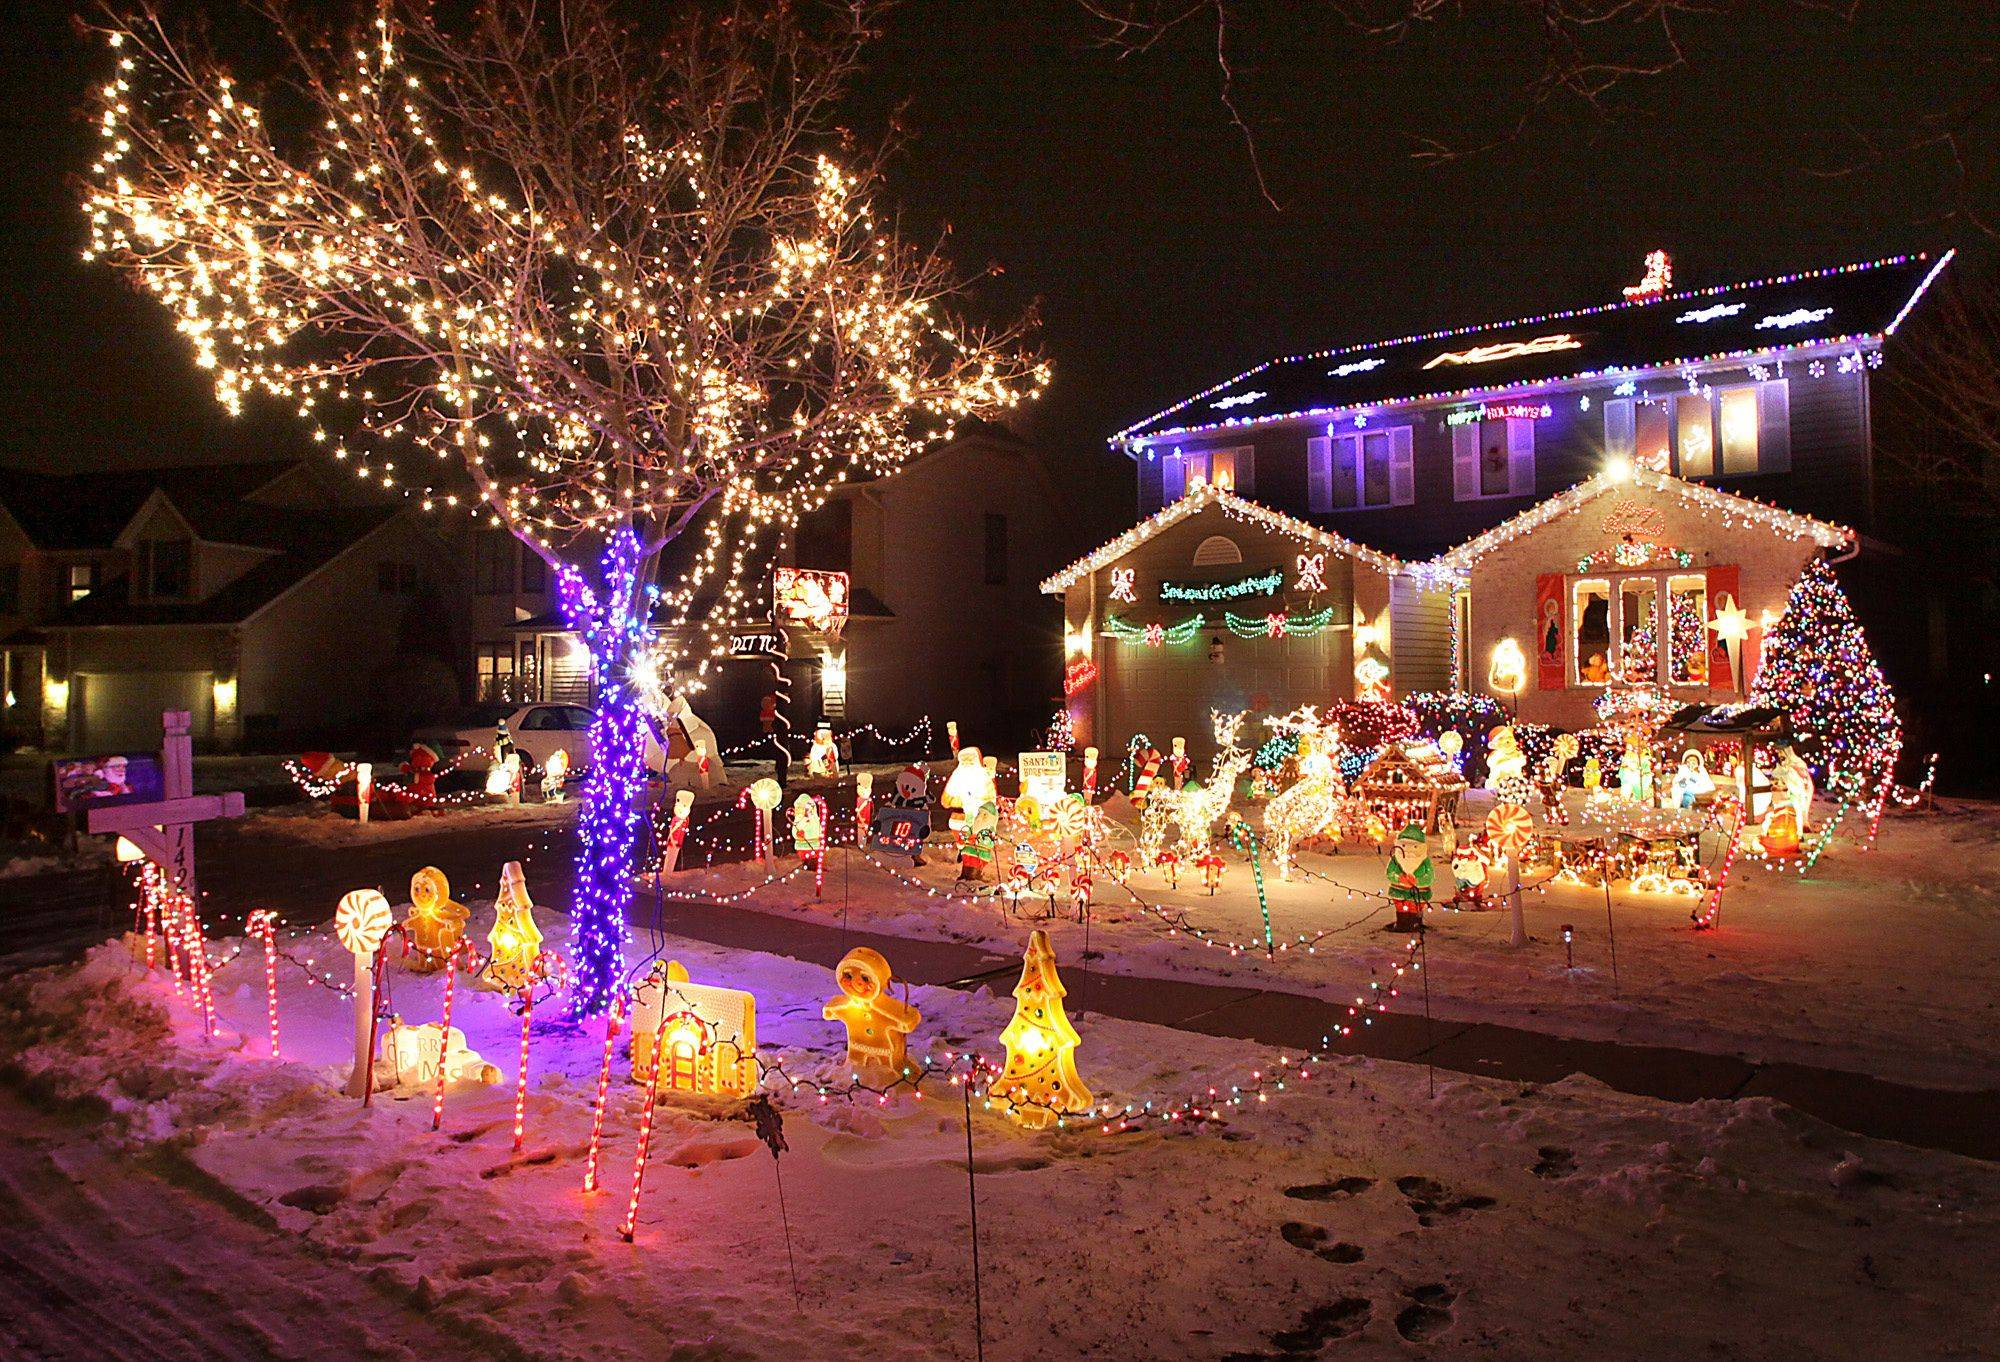 Bill and Jennifer Kyprianidis are the winners of the 2010 Daily Herald holiday lights contest. Their home is at 1495 Morgan Drive in Elk Grove.